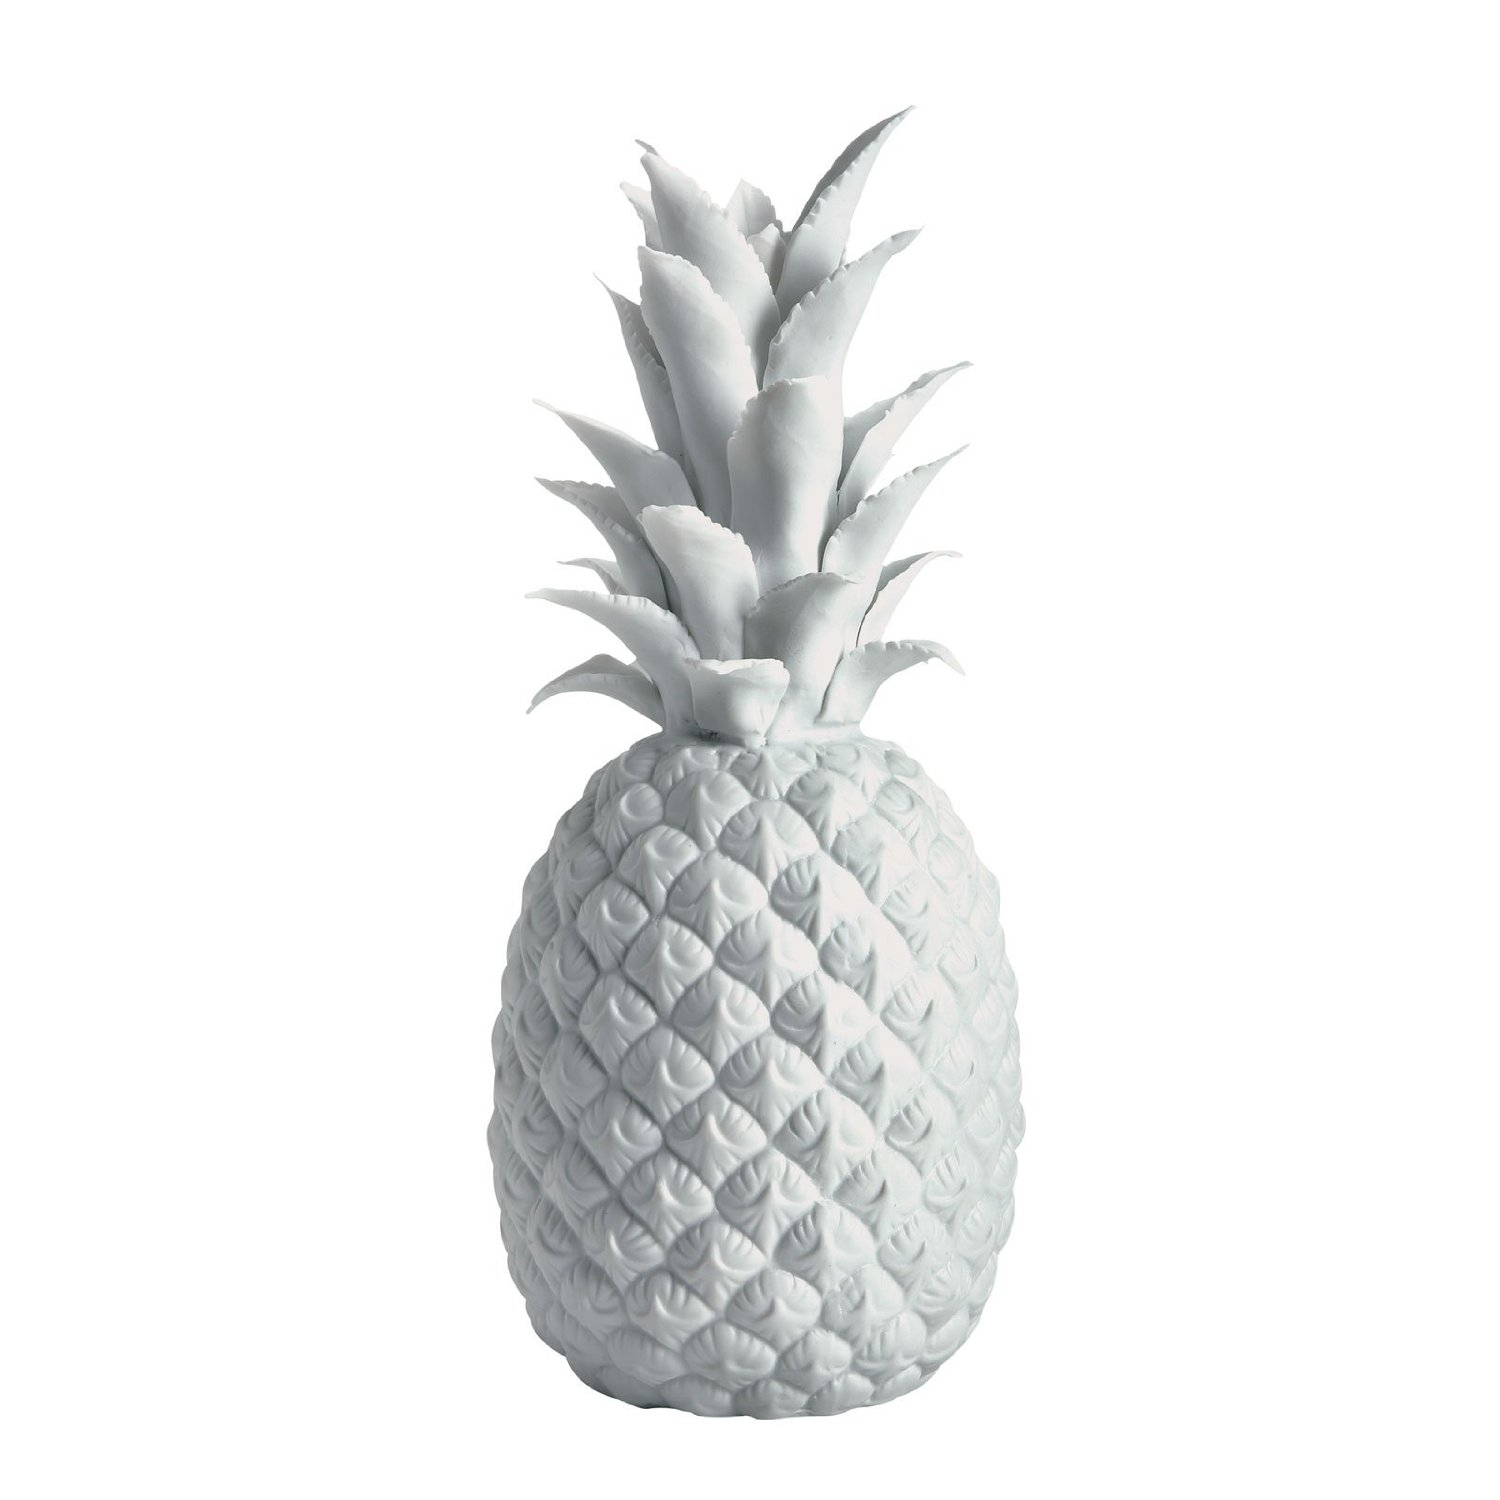 Pineapple Accessories Classy With White Porcelain Pineapple Pictures